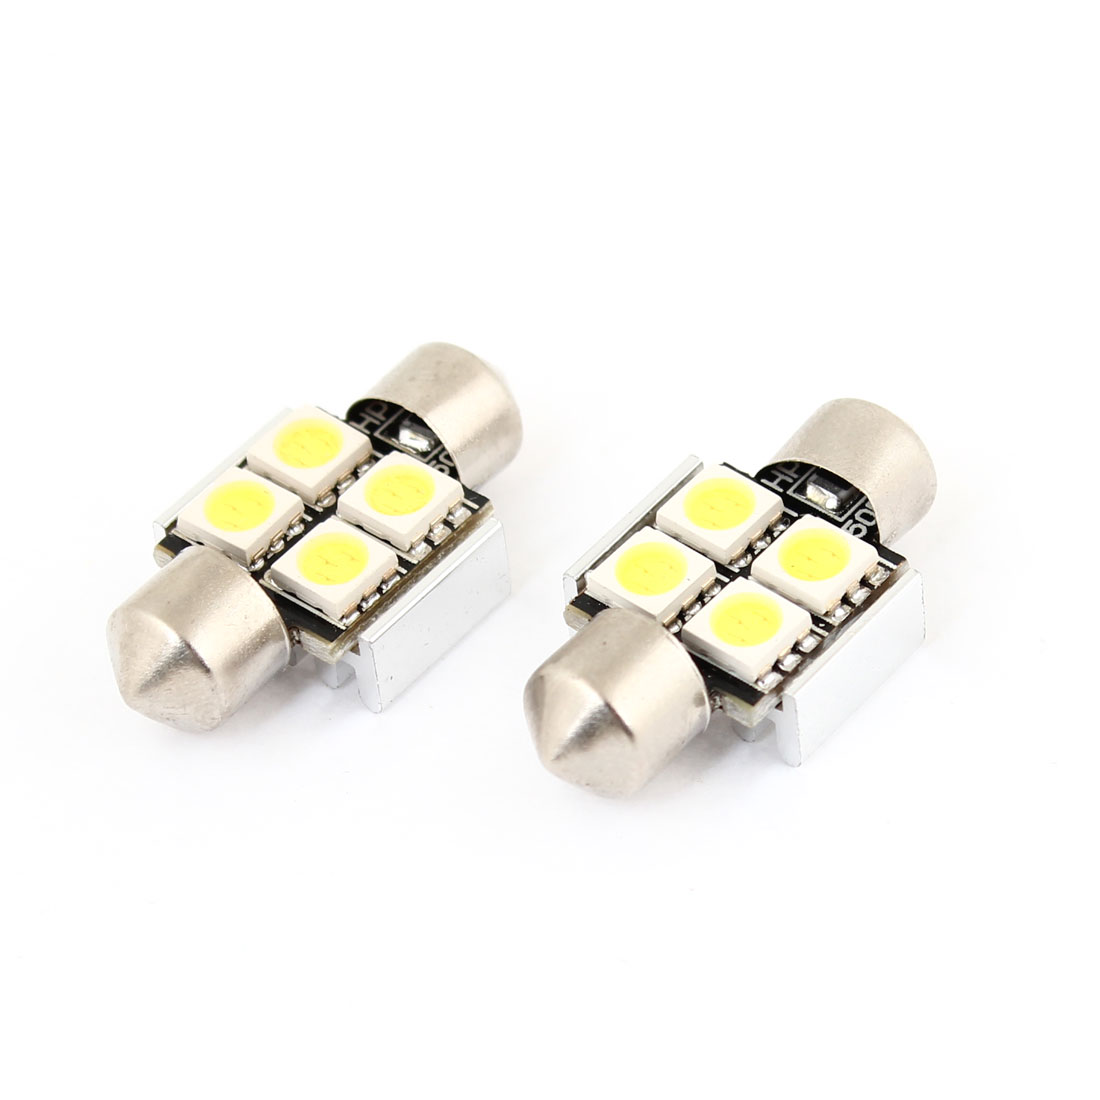 2x Error Free White 4 LED 5050 SMD Festoon Light 31mm for Car Dome Lamp Bulb